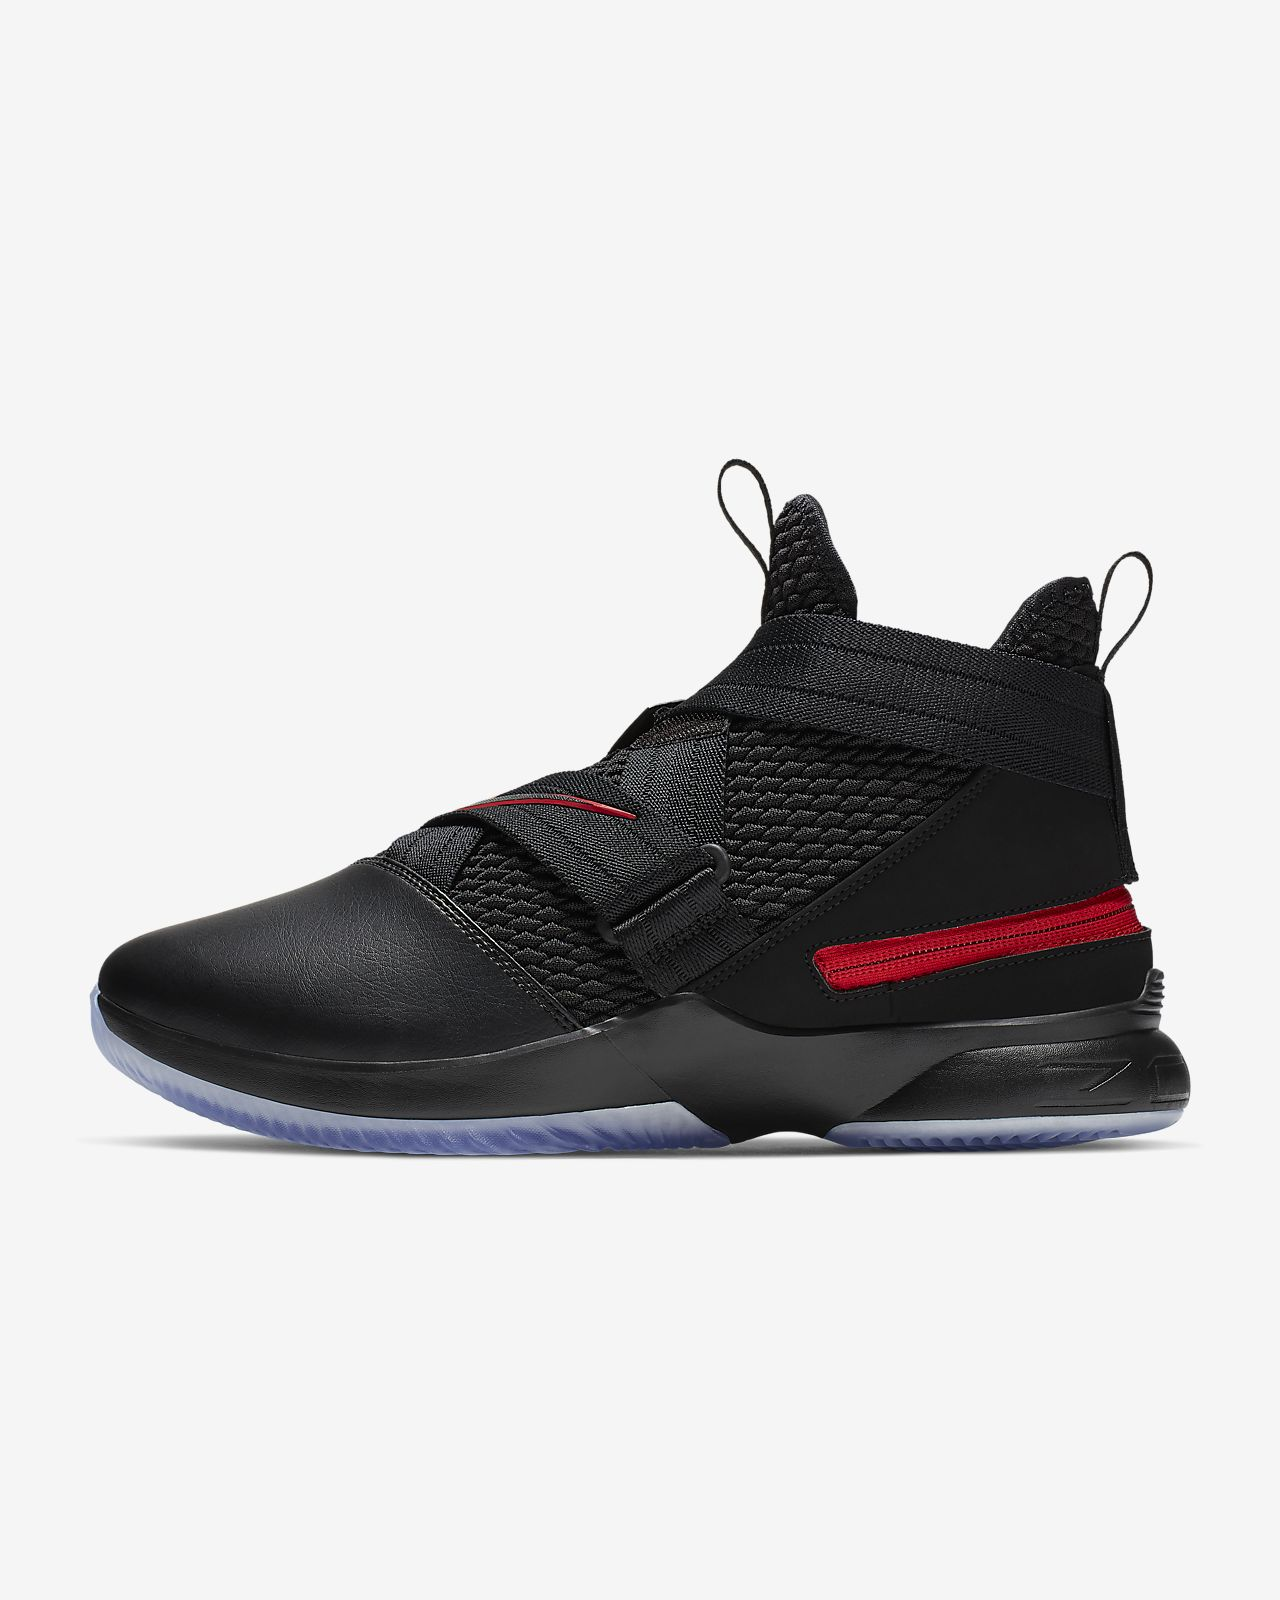 timeless design c348a cfb4c ... LeBron Soldier 12 FlyEase (Extra-Wide) Mens Basketball Shoe